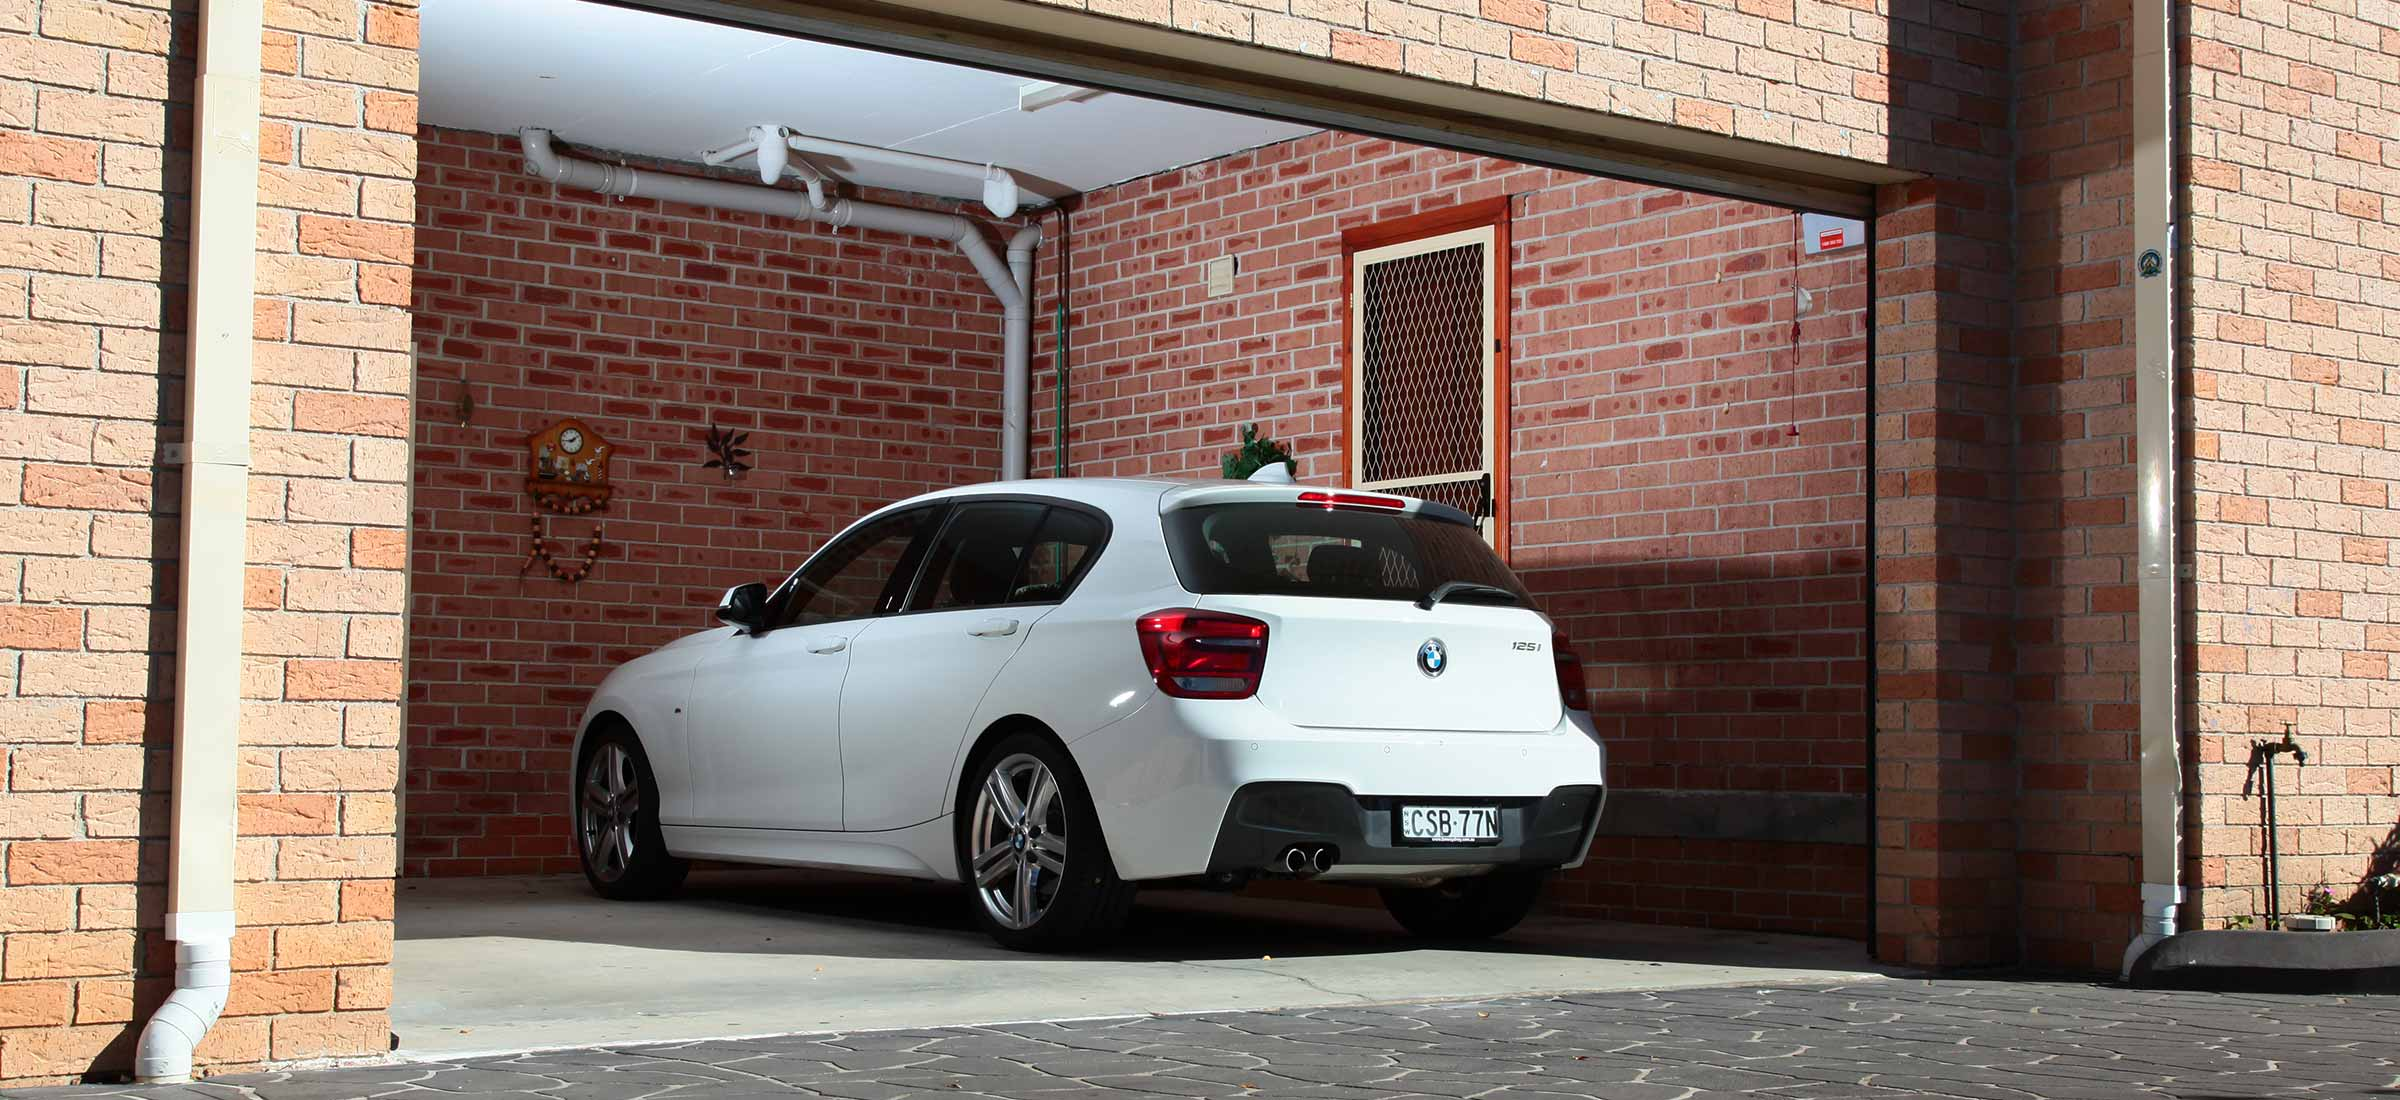 Garage door open with car parked in the garage